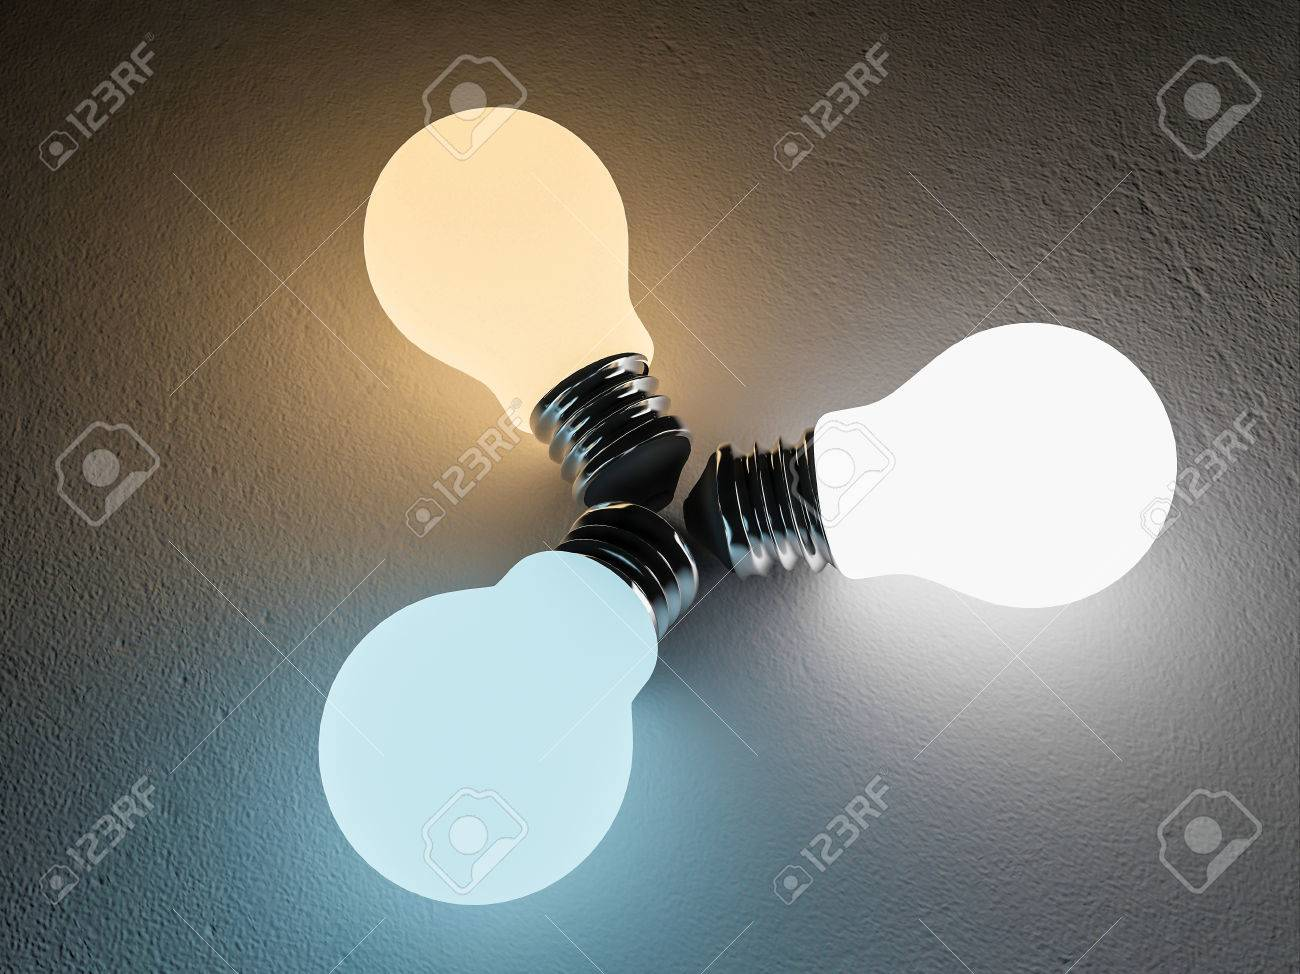 3D Rendering Image Of 3 Light Bulb Or Lamps Place On The Cracked Concrete  Floor.